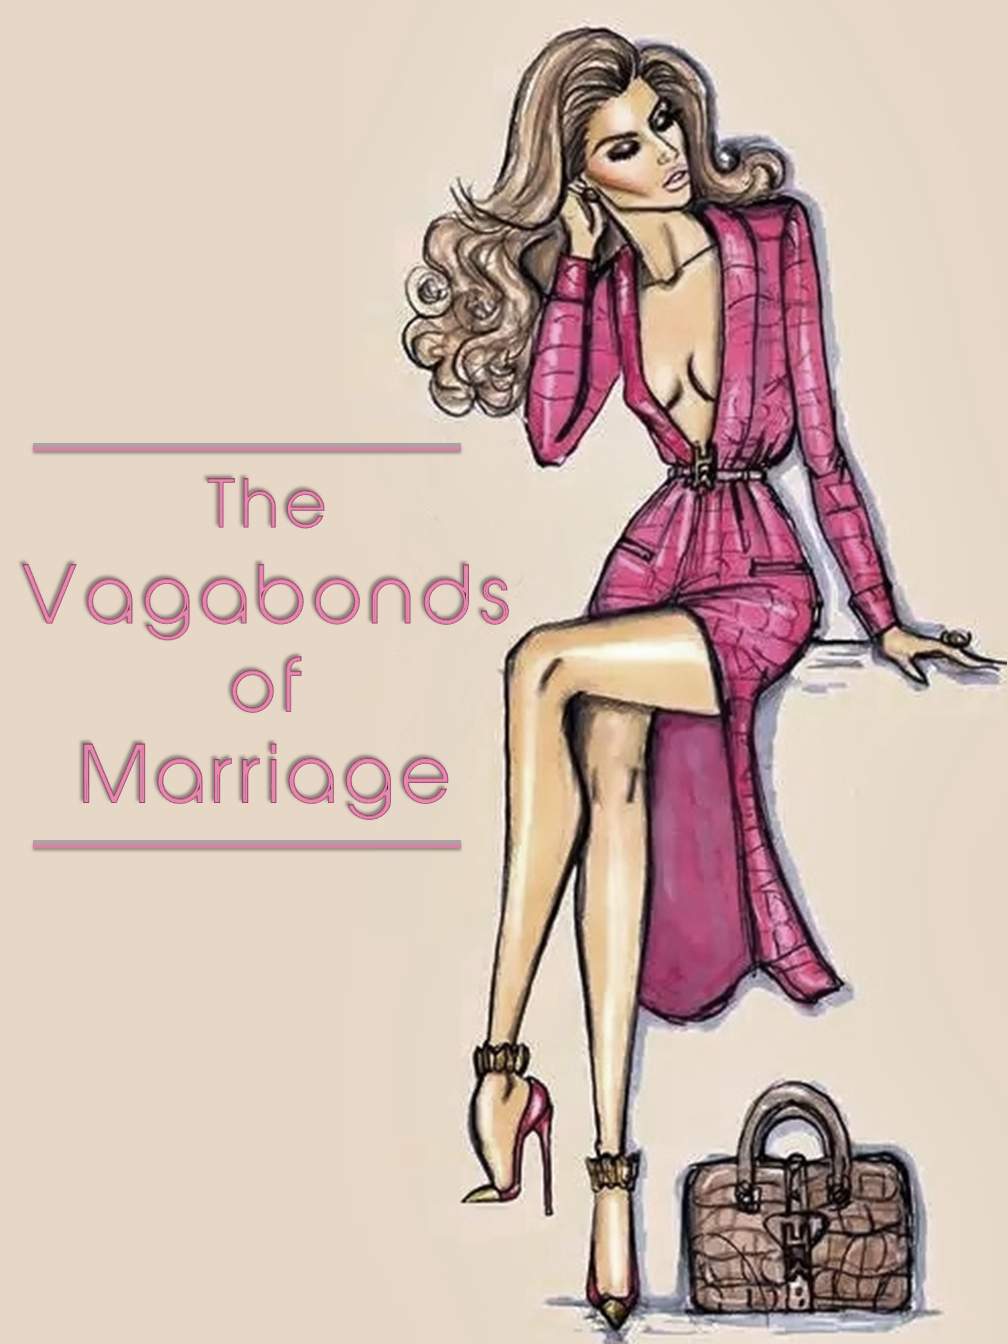 The Vagabonds of Marriage